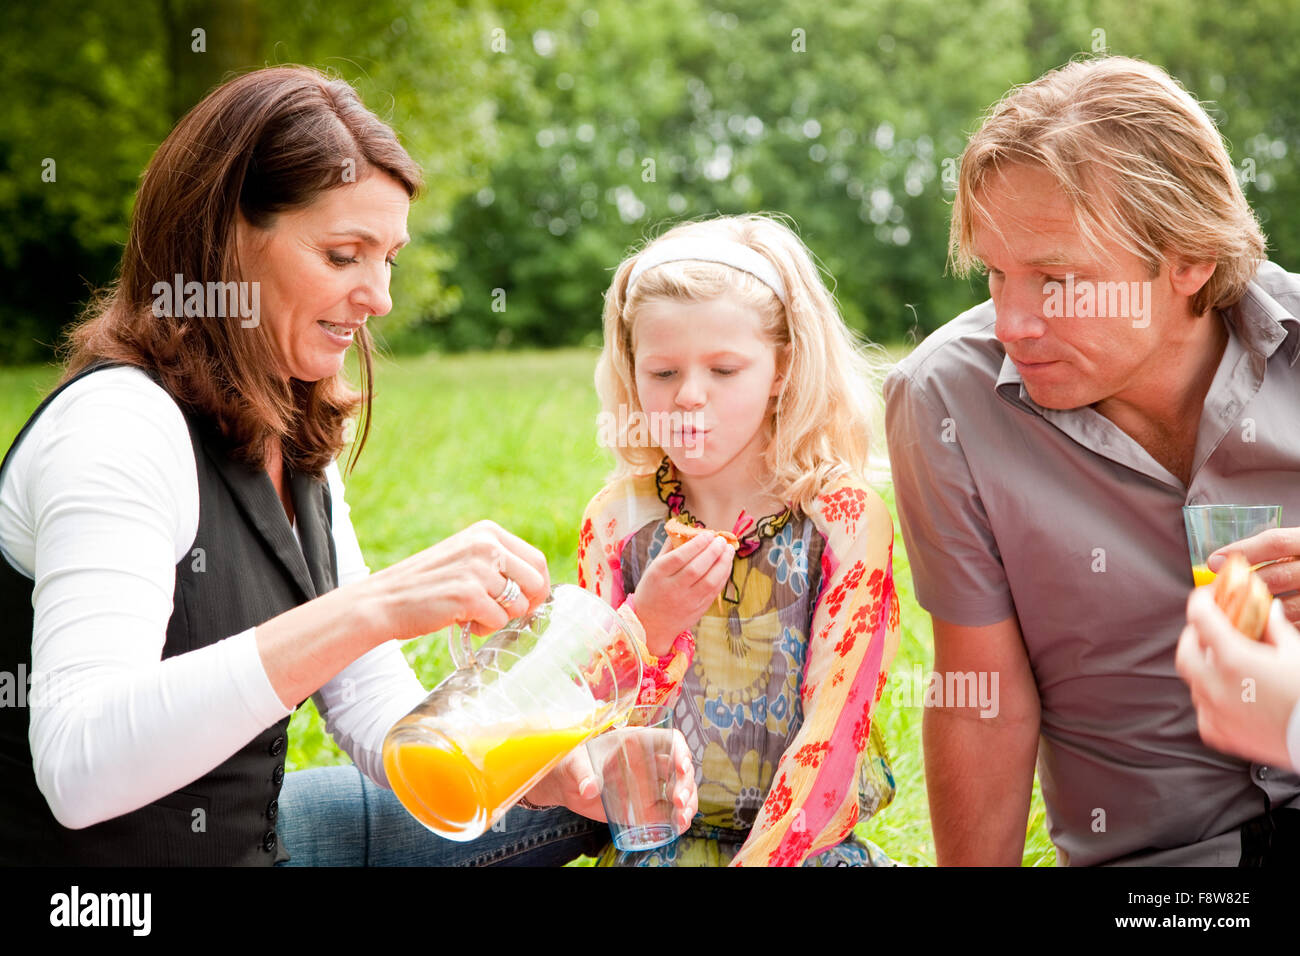 Outdoors family picnic - Stock Image